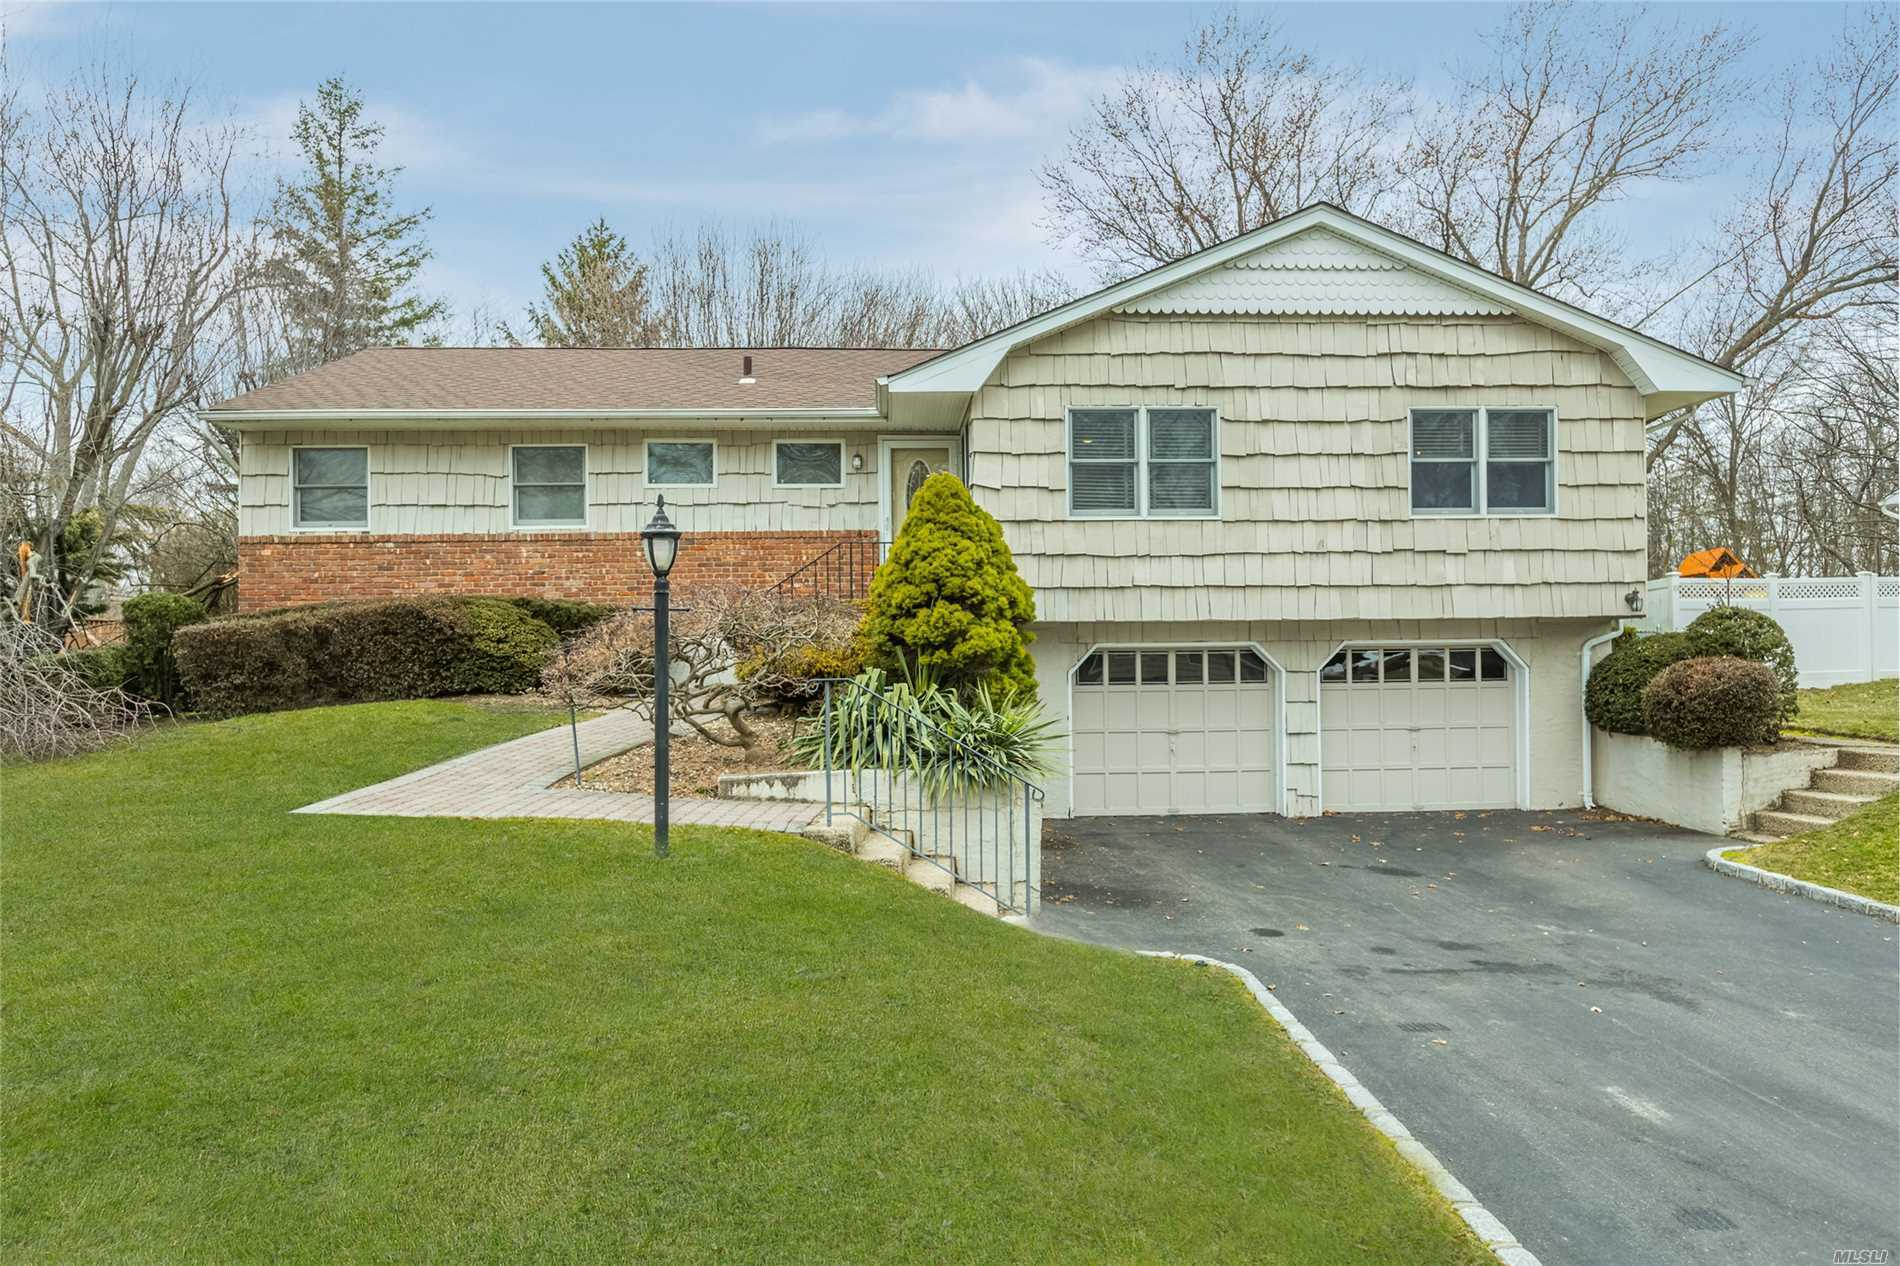 45 Sunflower Dr - Hauppauge, New York